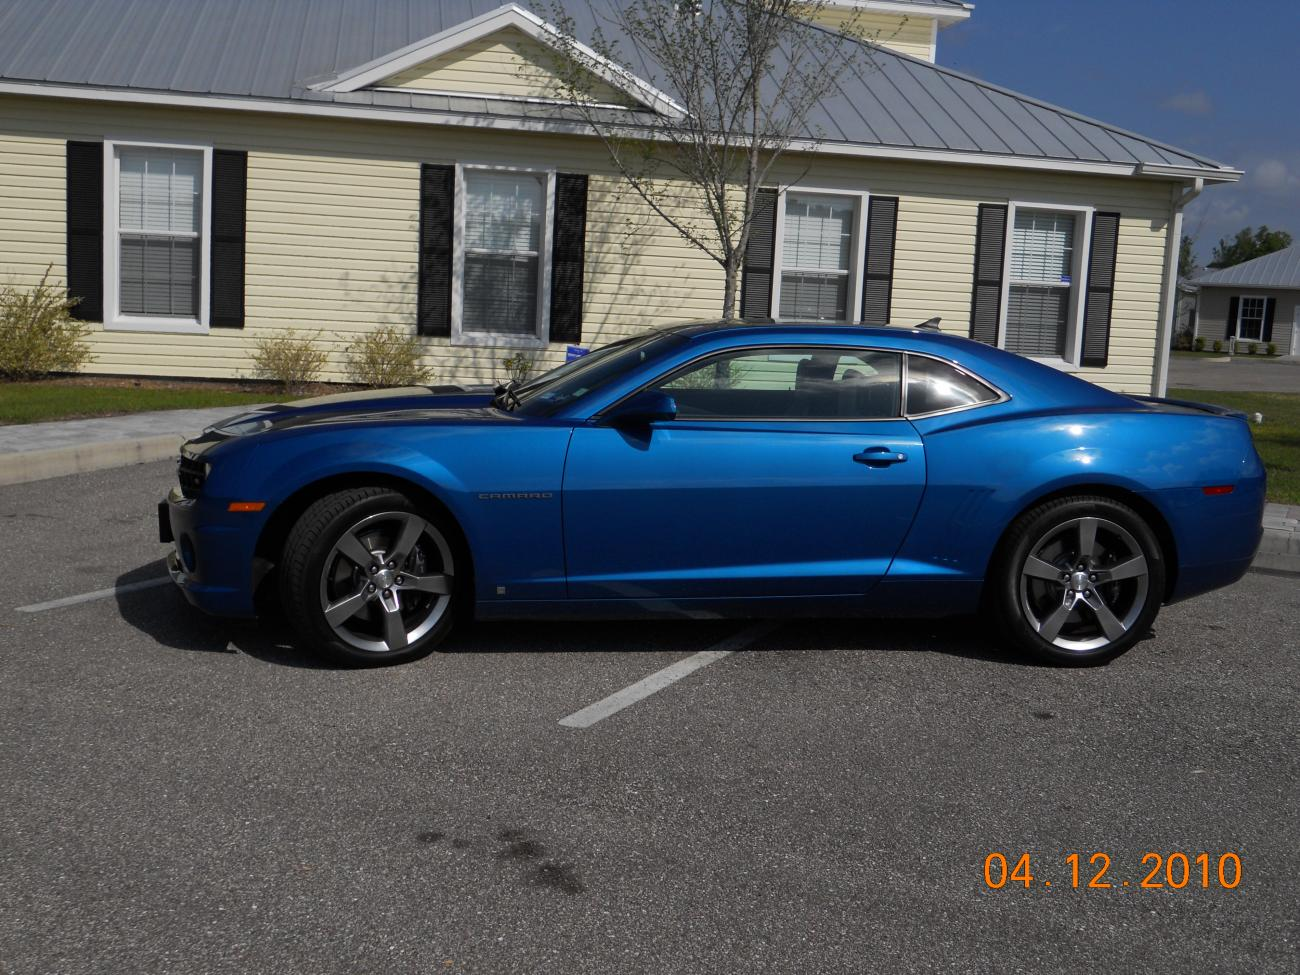 2010 abm bge 2ss rs m6 w roof for sale soon new member looking for advice camaro5 chevy. Black Bedroom Furniture Sets. Home Design Ideas